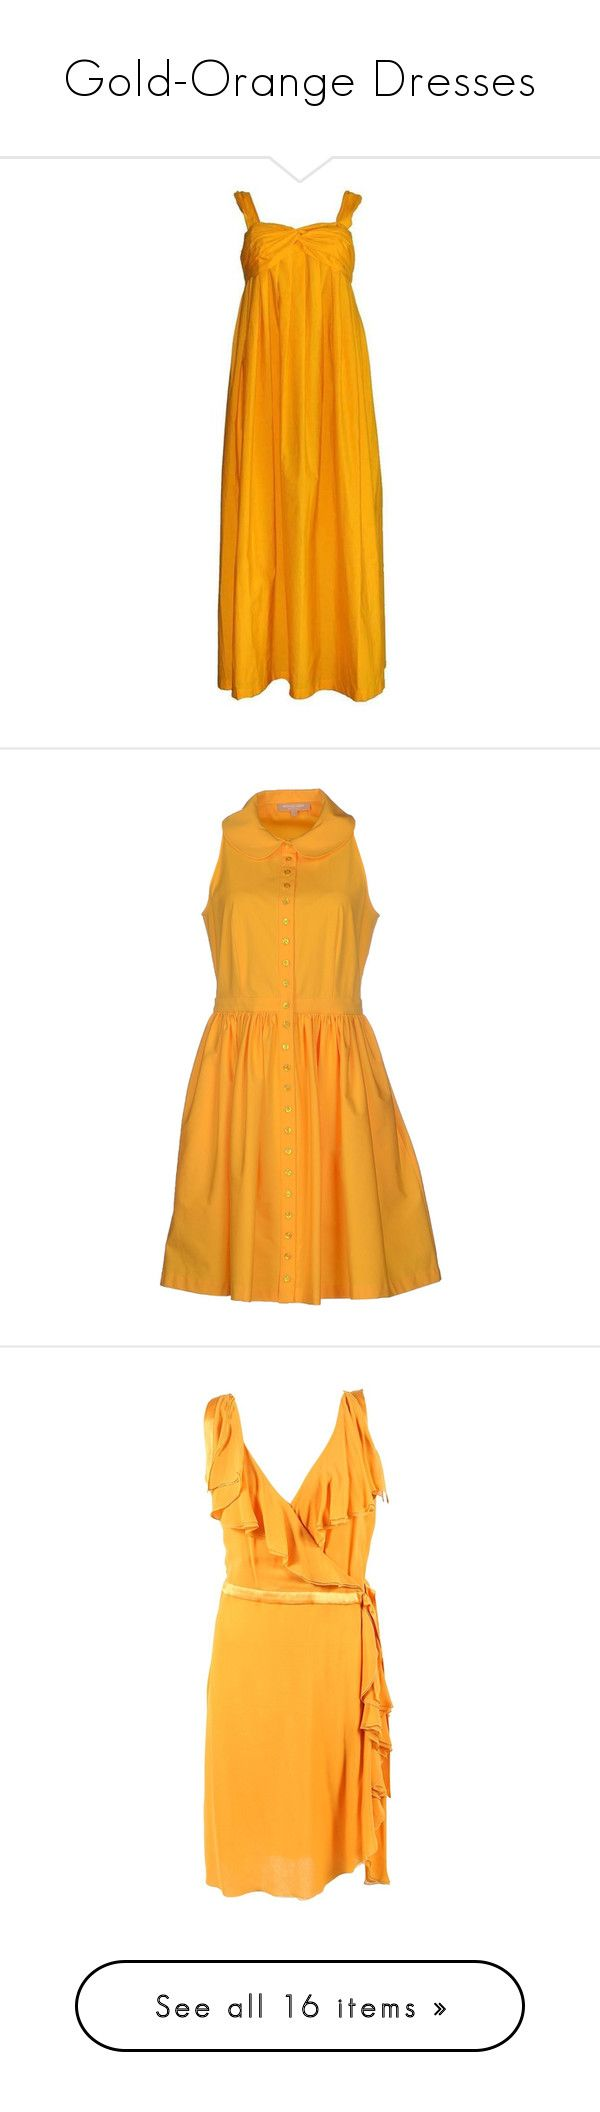 """Gold-Orange Dresses"" by tegan-b-riley on Polyvore featuring dresses, maxi dresses, orange, summery dresses, drape maxi dress, summer maxi dresses, preowned dresses, orange maxi dresses, yellow and no sleeve dress"